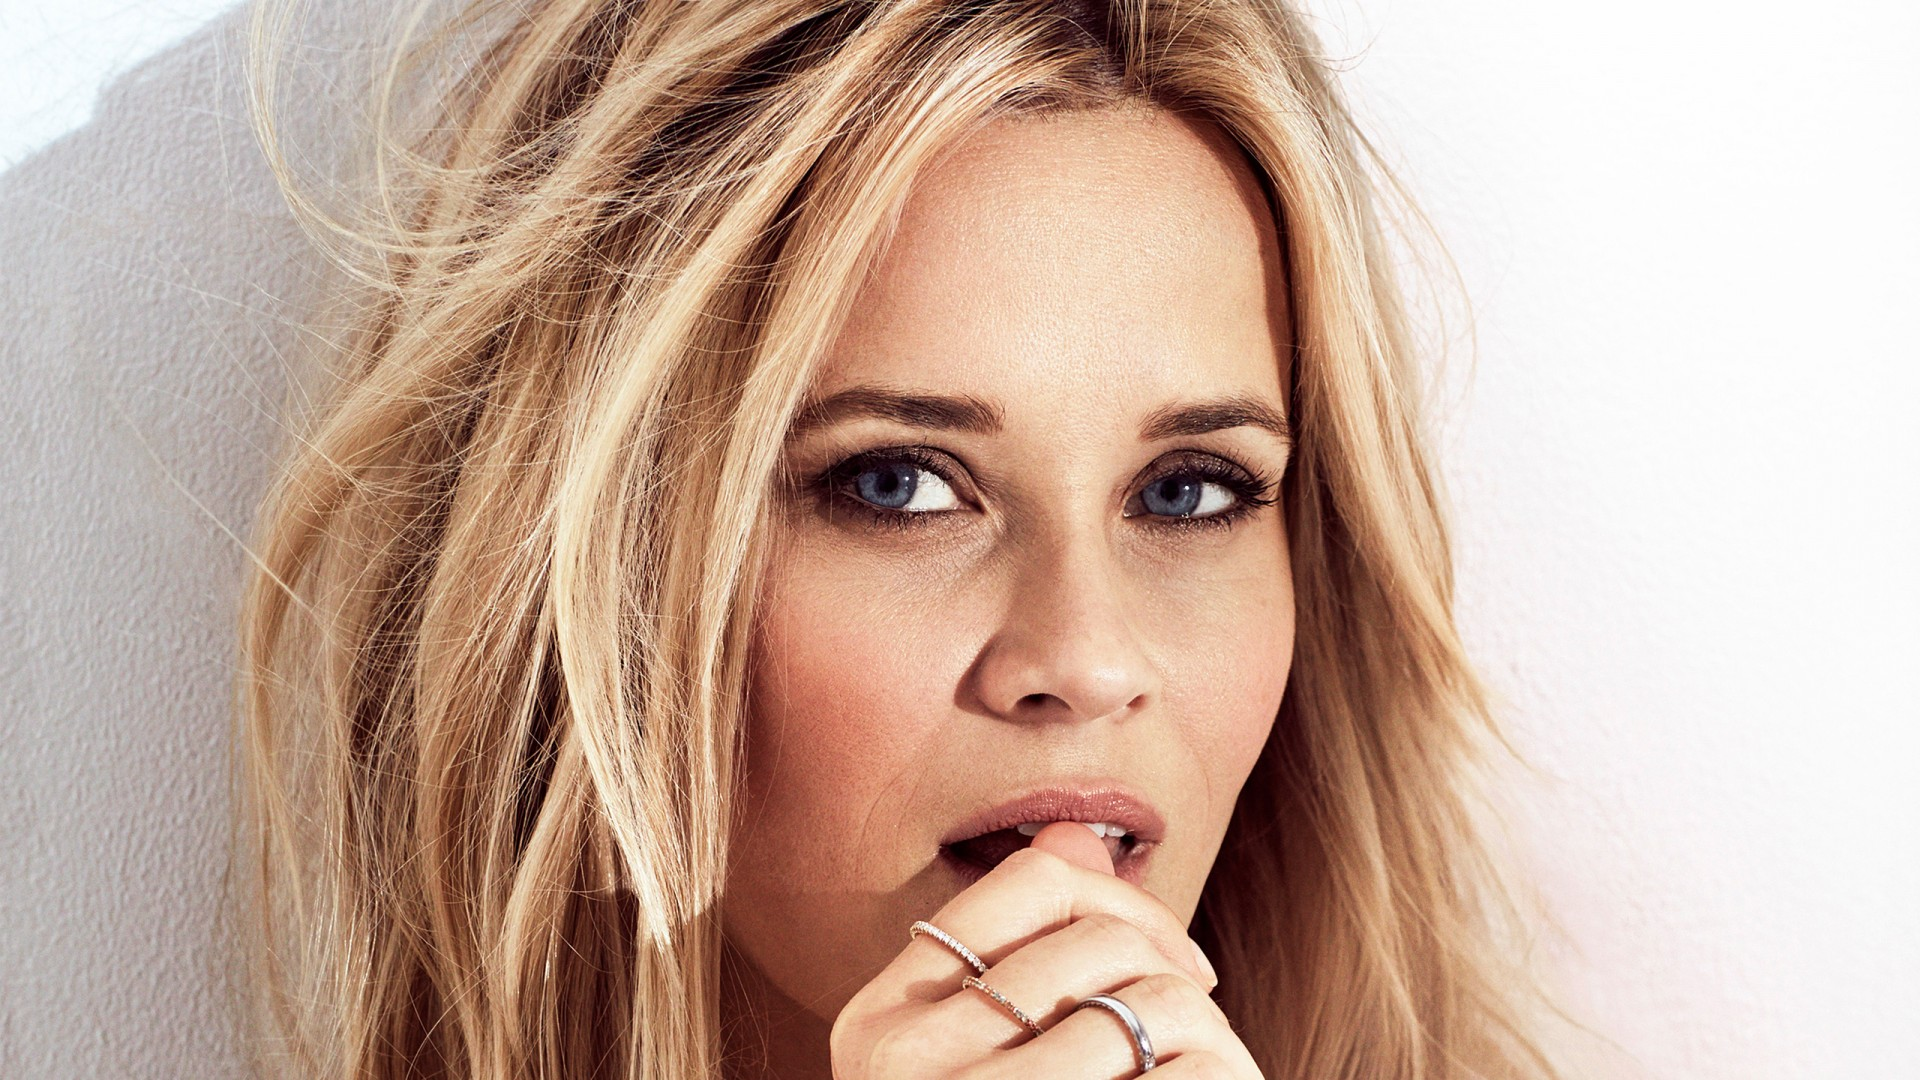 Most Beautiful 3d Wallpaper Reese Witherspoon Big Little Lies 2017 Wallpapers Hd